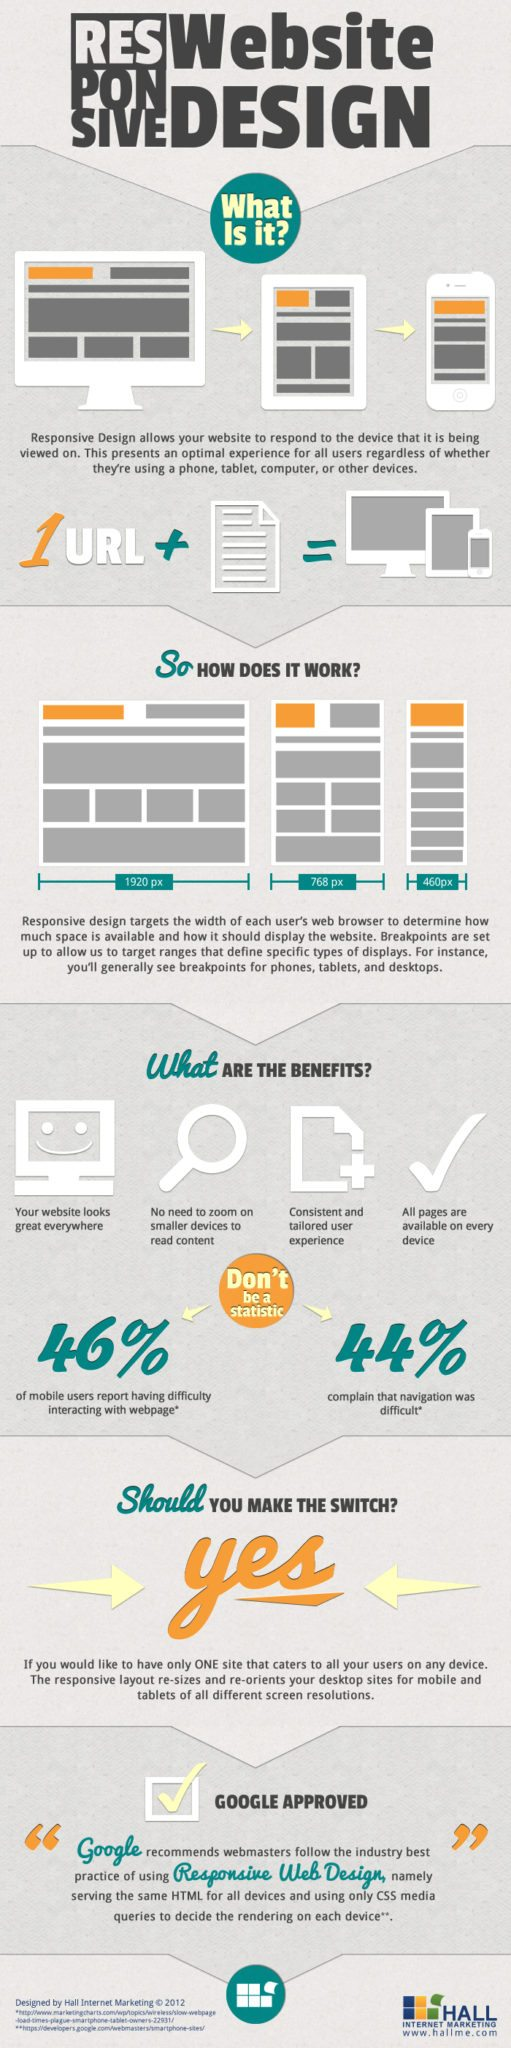 What is Responsive Website Design?